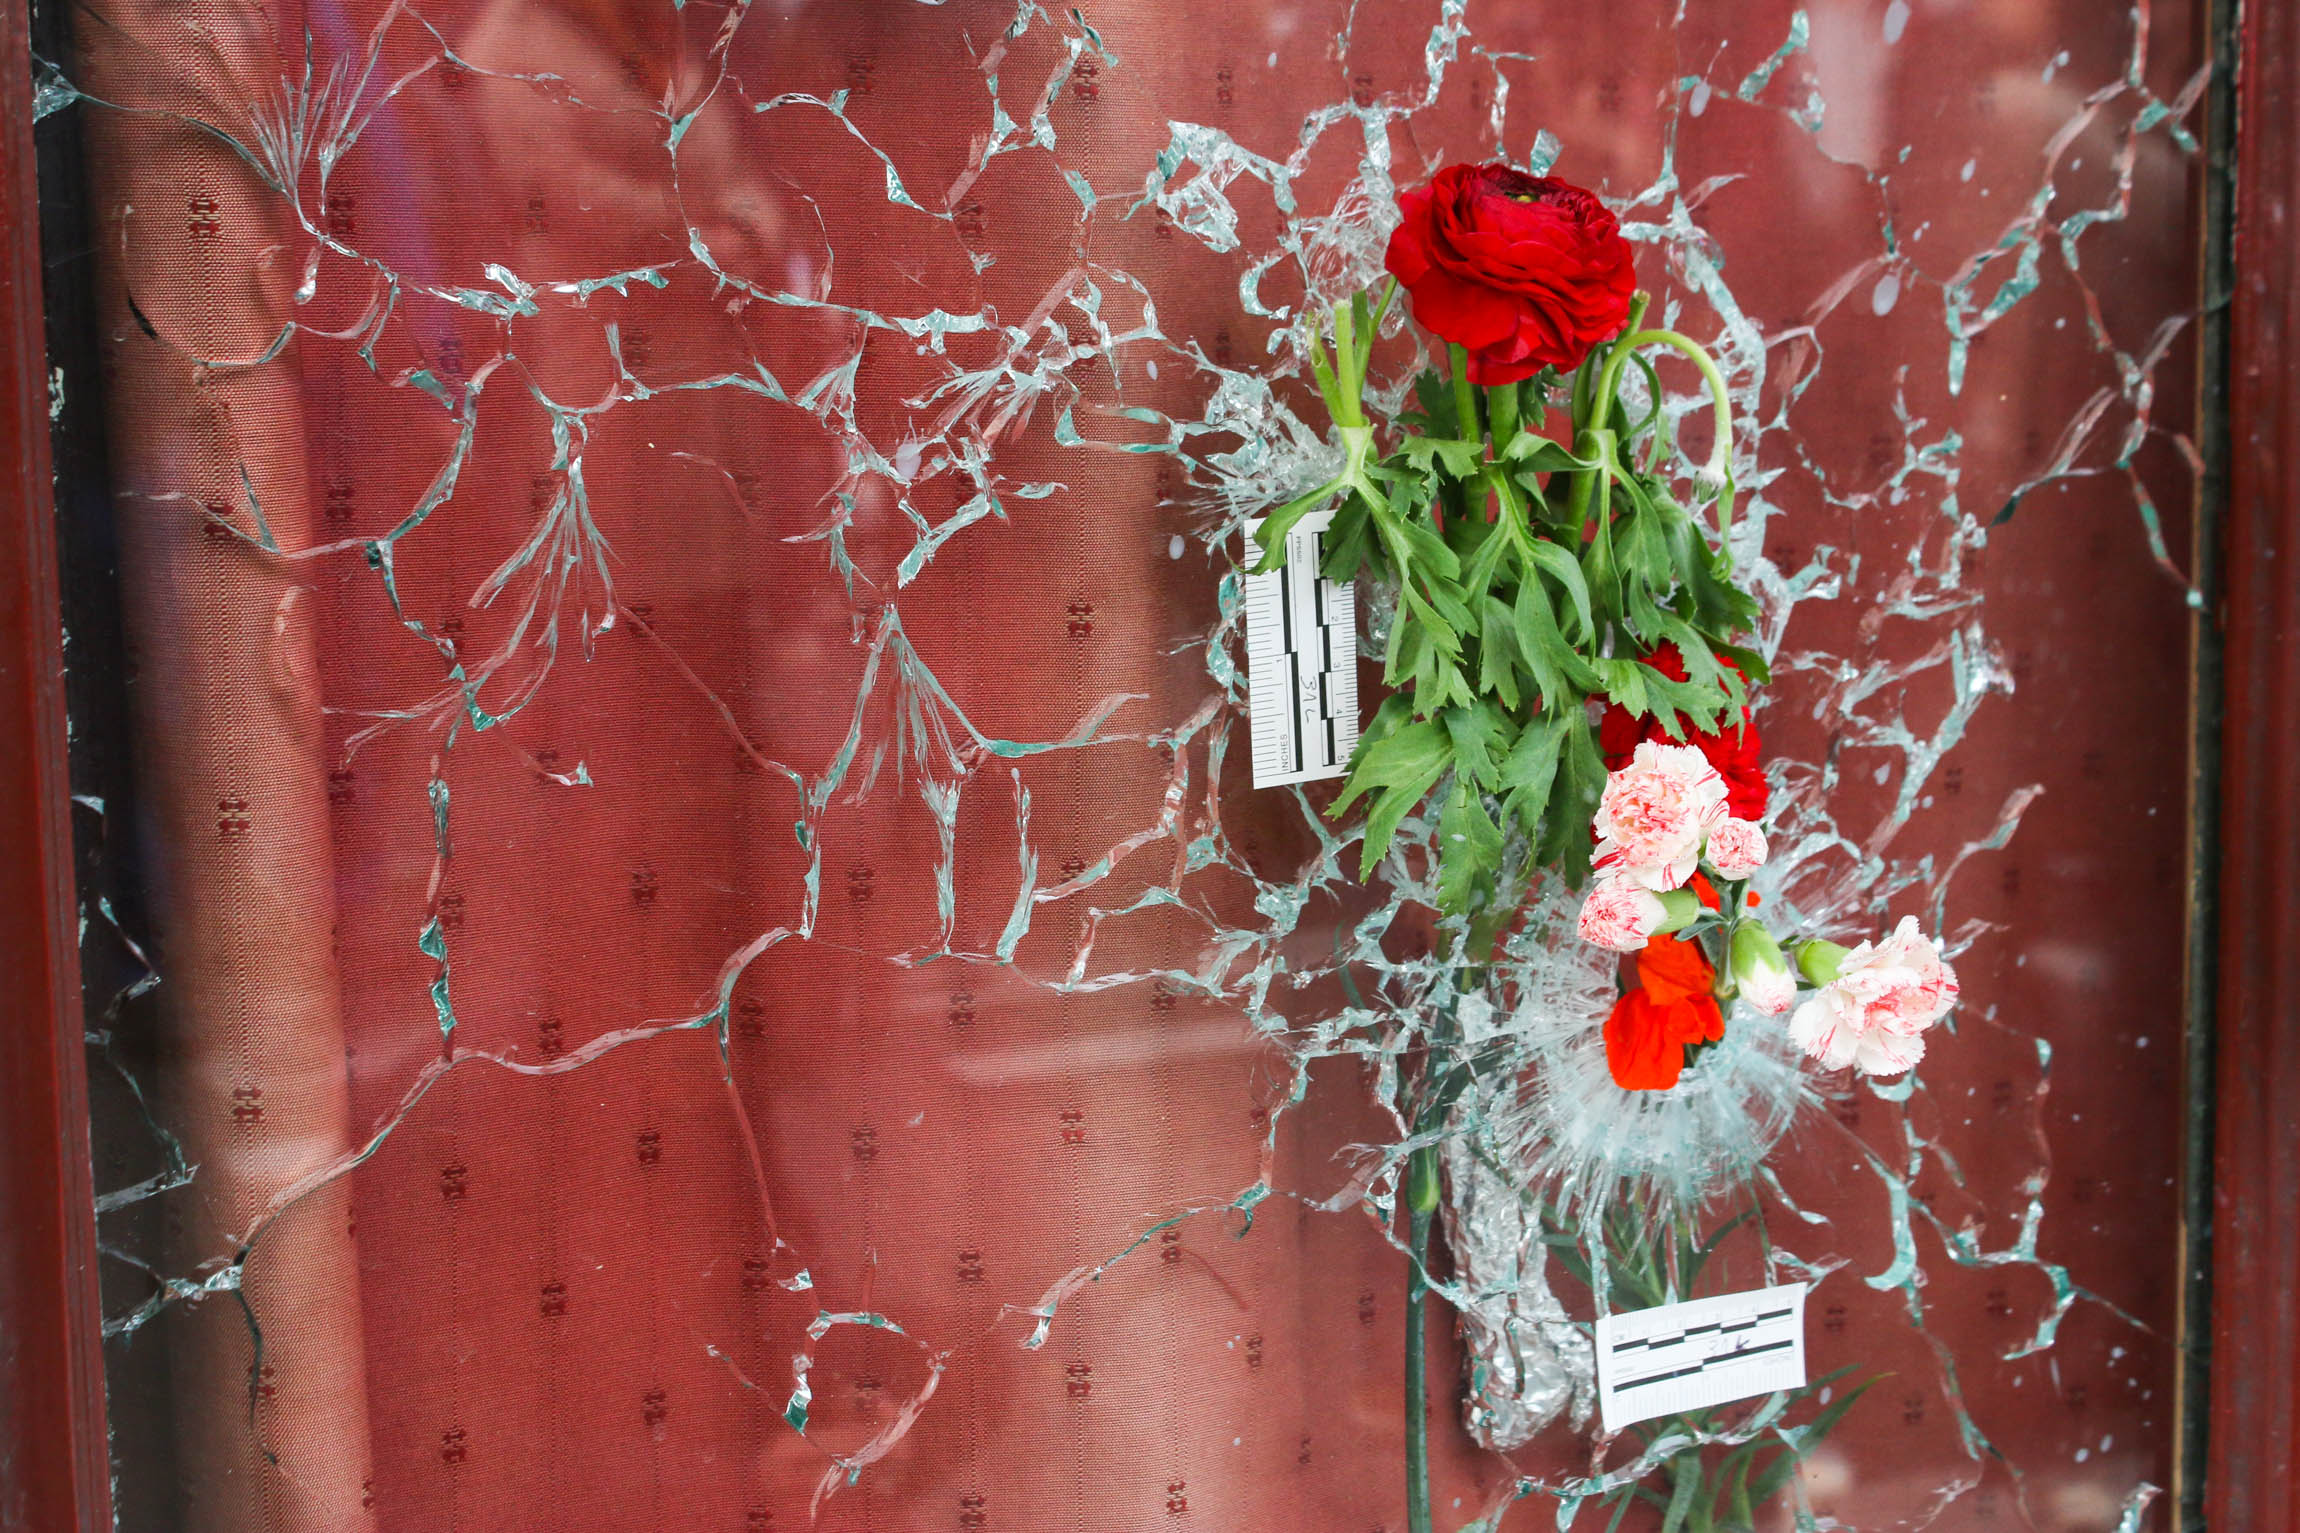 Flowers have been placed in a bullet hole at the Carillon restaurant in Paris, Nov 2015.